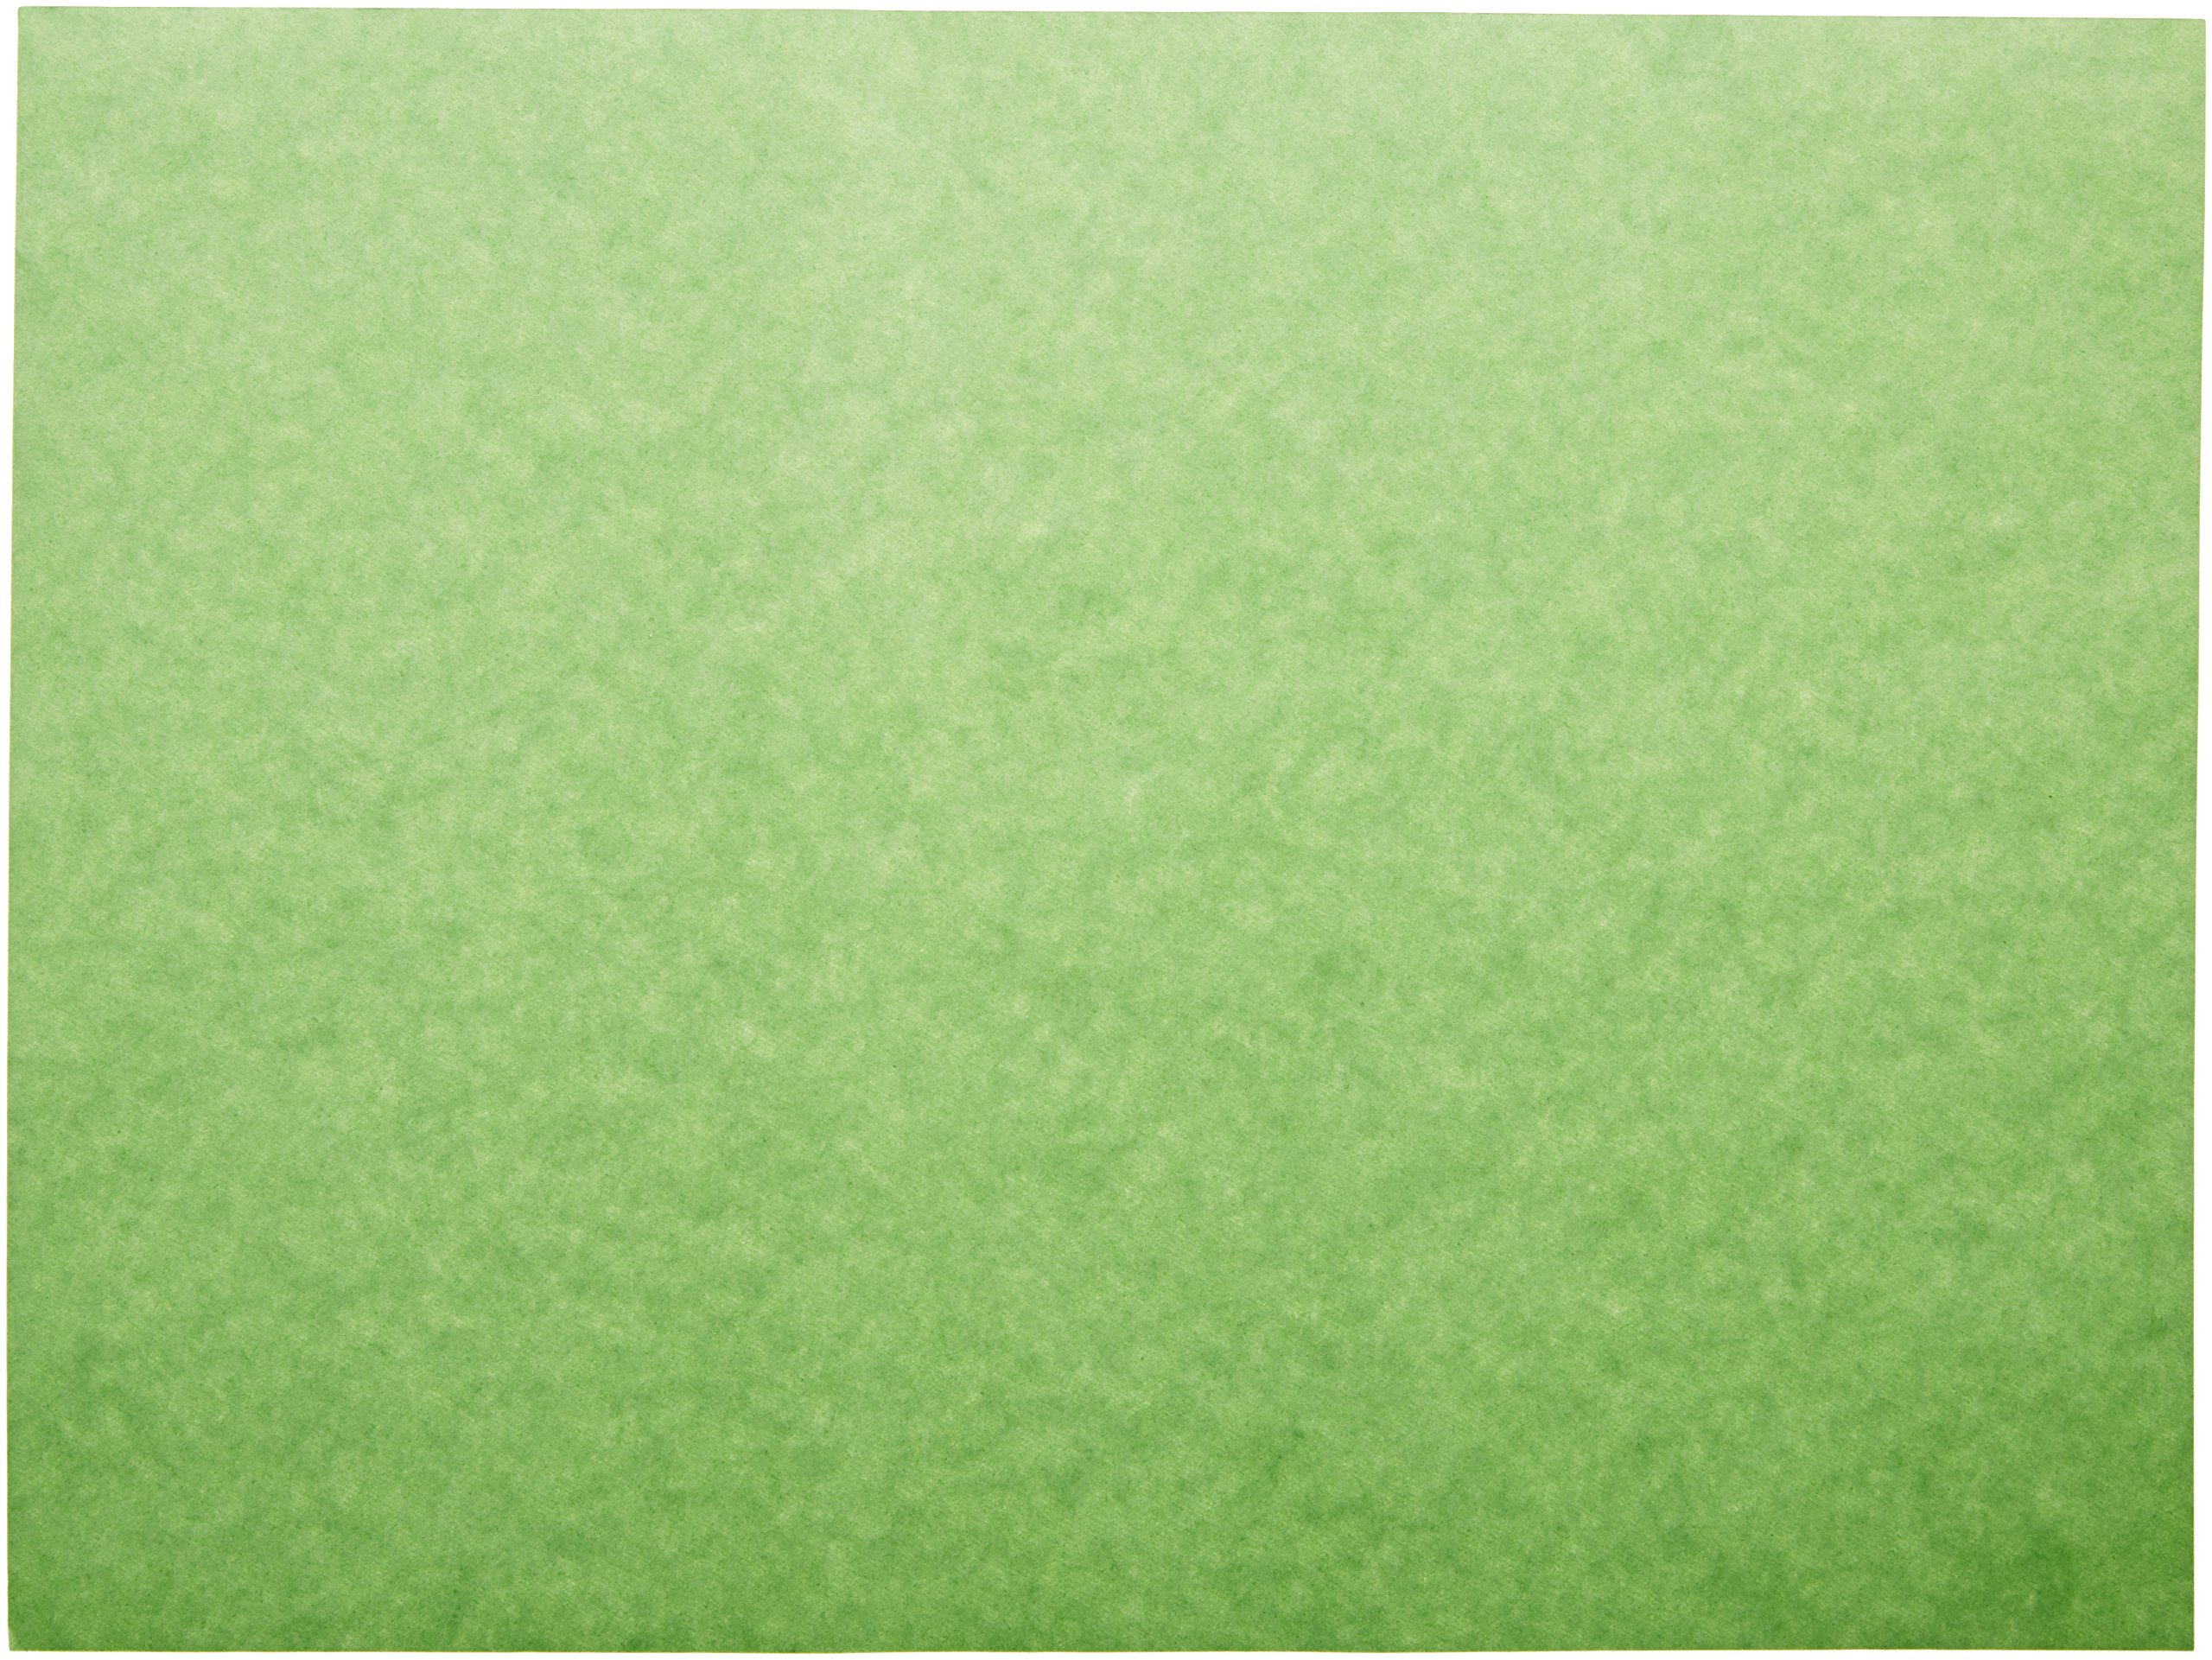 Bagcraft Papercon 101912 Steak and Market Paper, 12'' Length x 9'' Width, Green (Case of 1000)